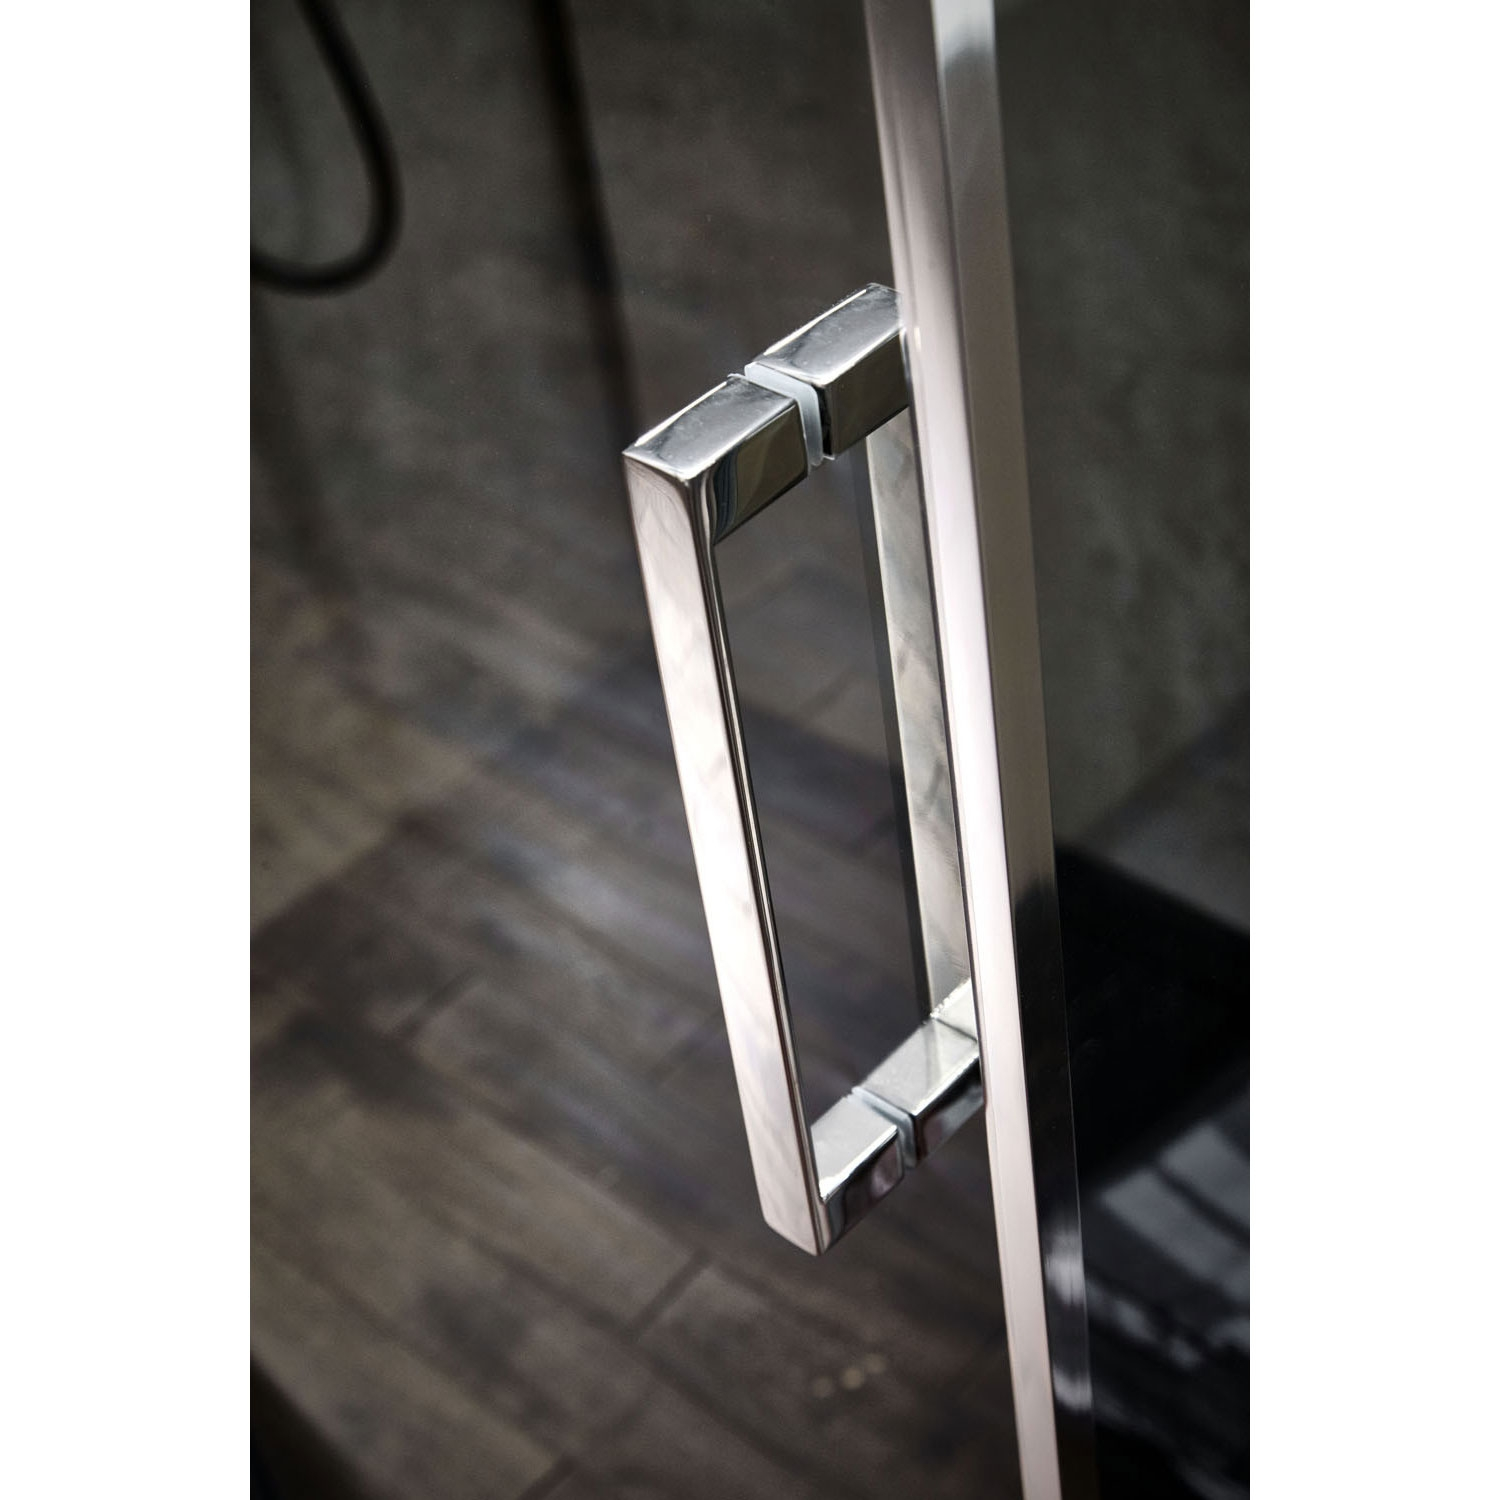 Verona Aquaglass+ Pola Sliding Shower Door 1400mm Wide - 8mm Clear Glass